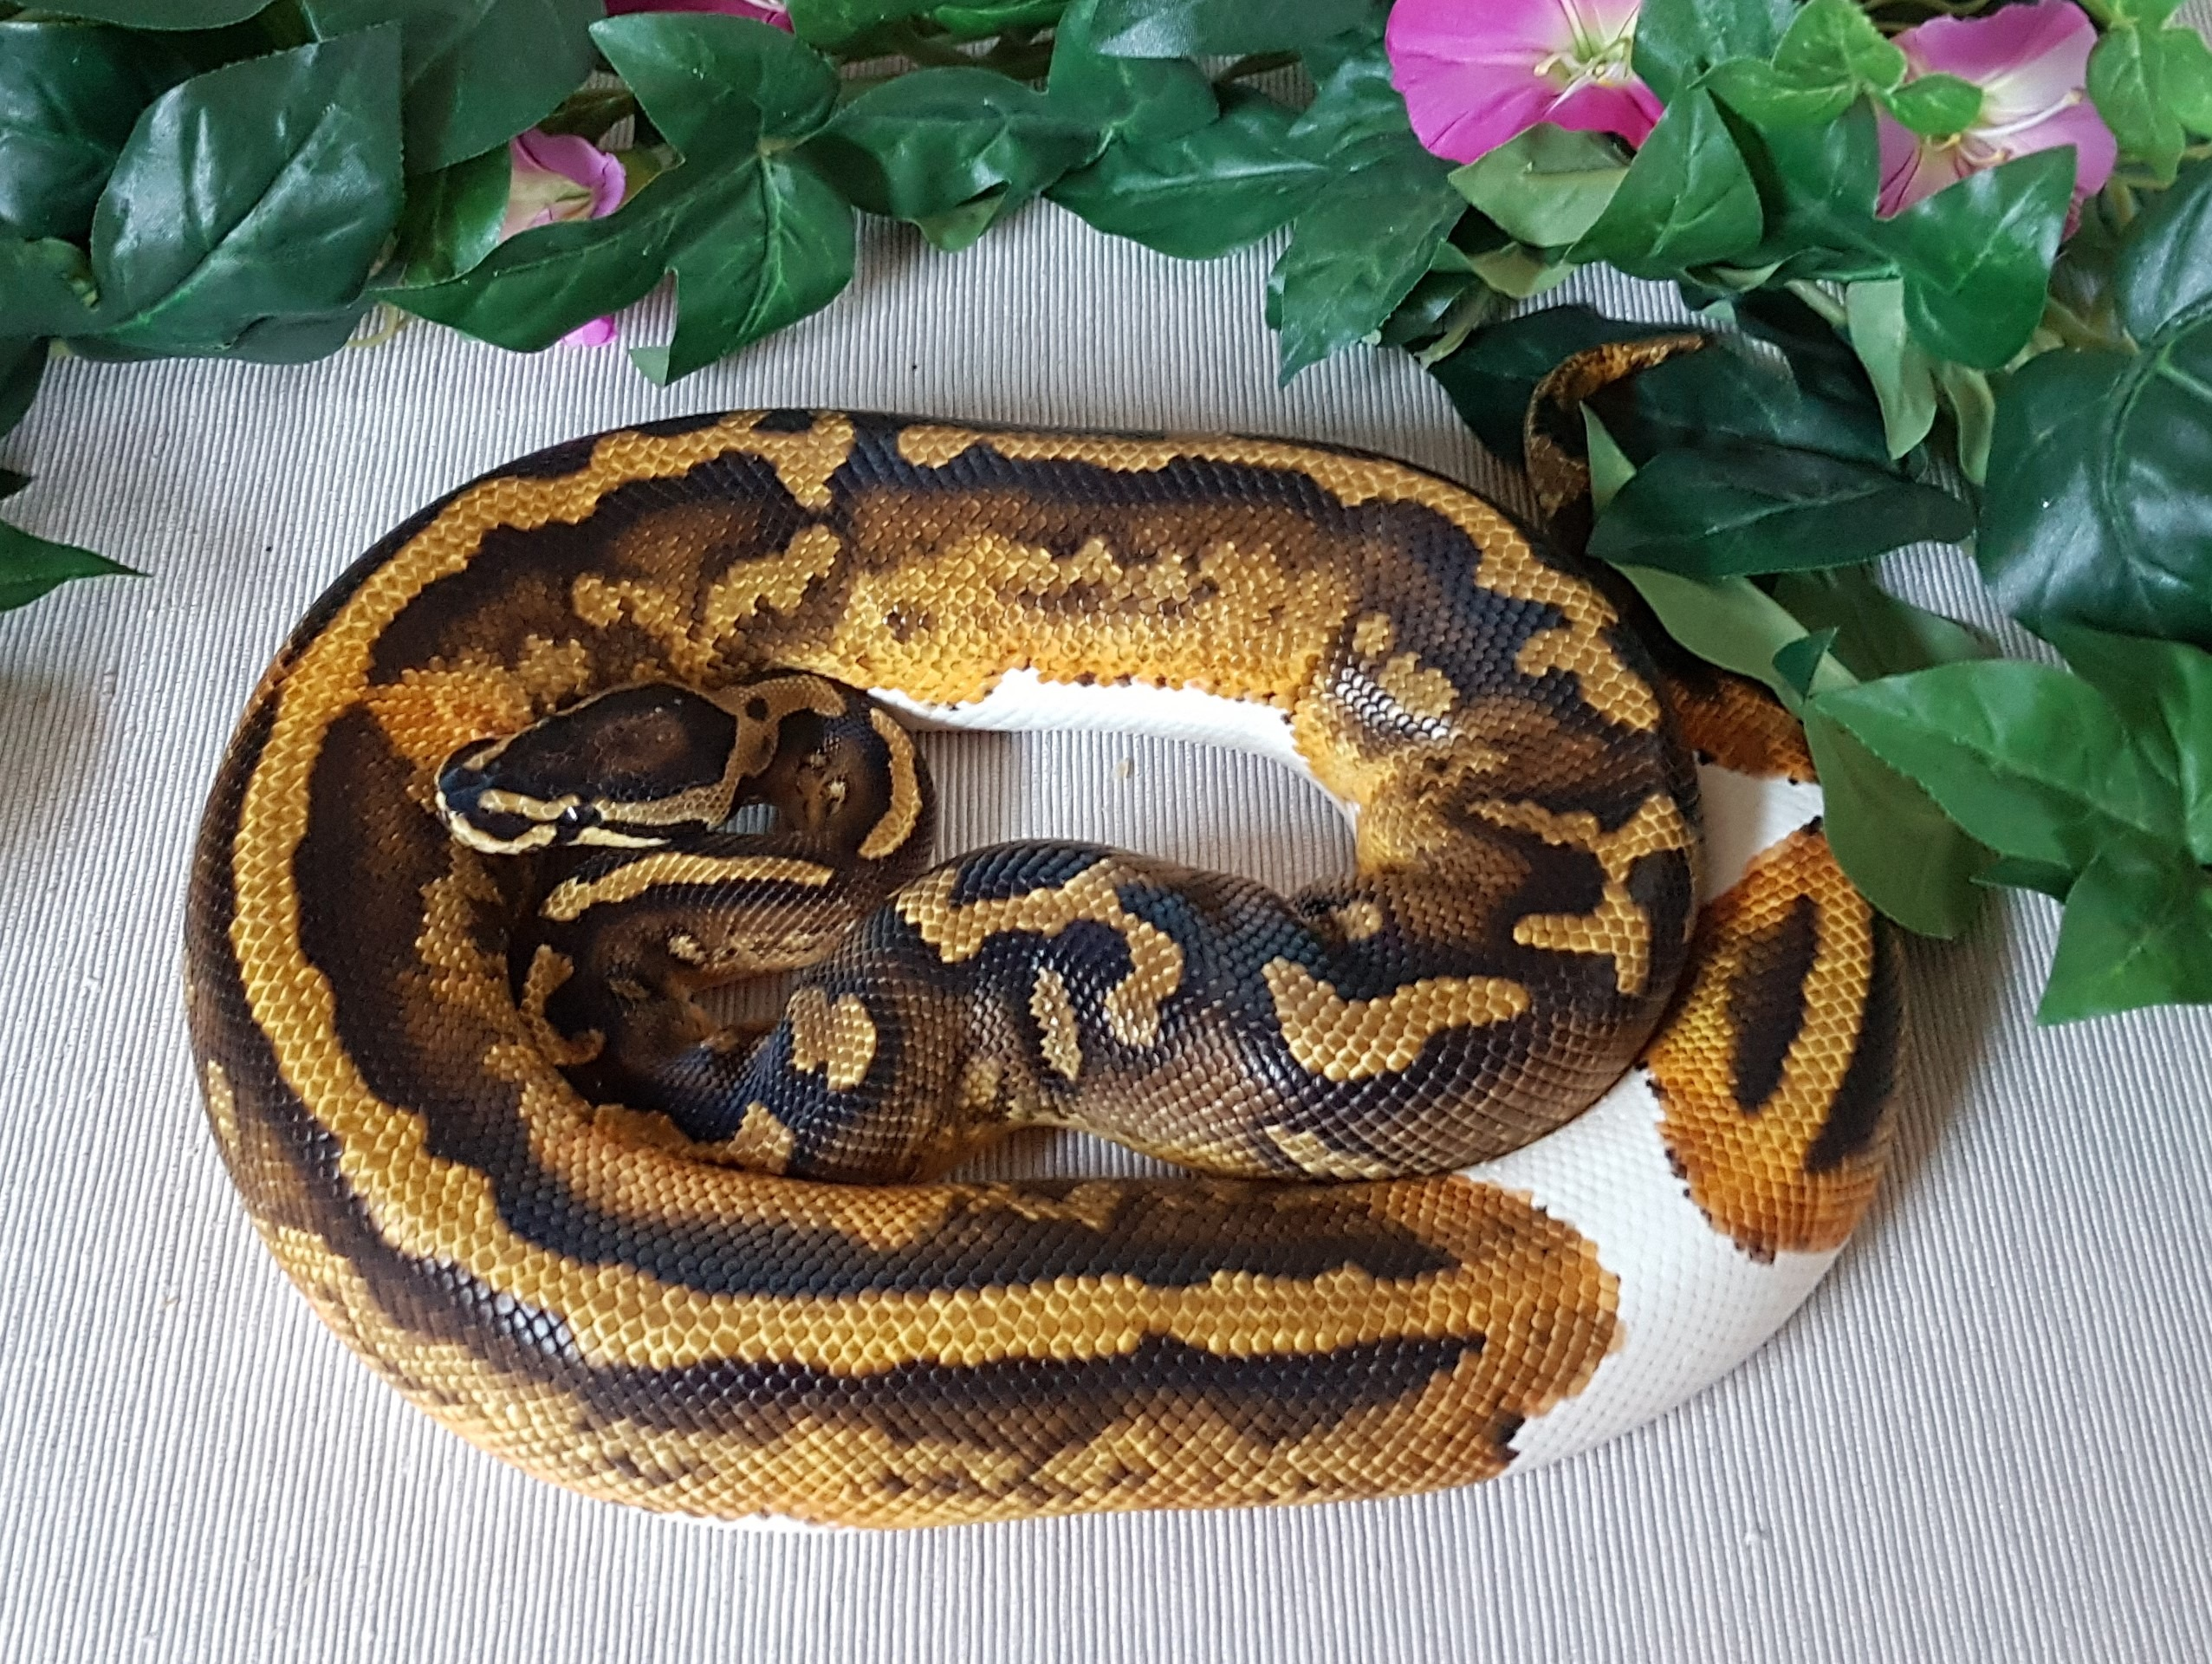 Yellowbelly Piebald